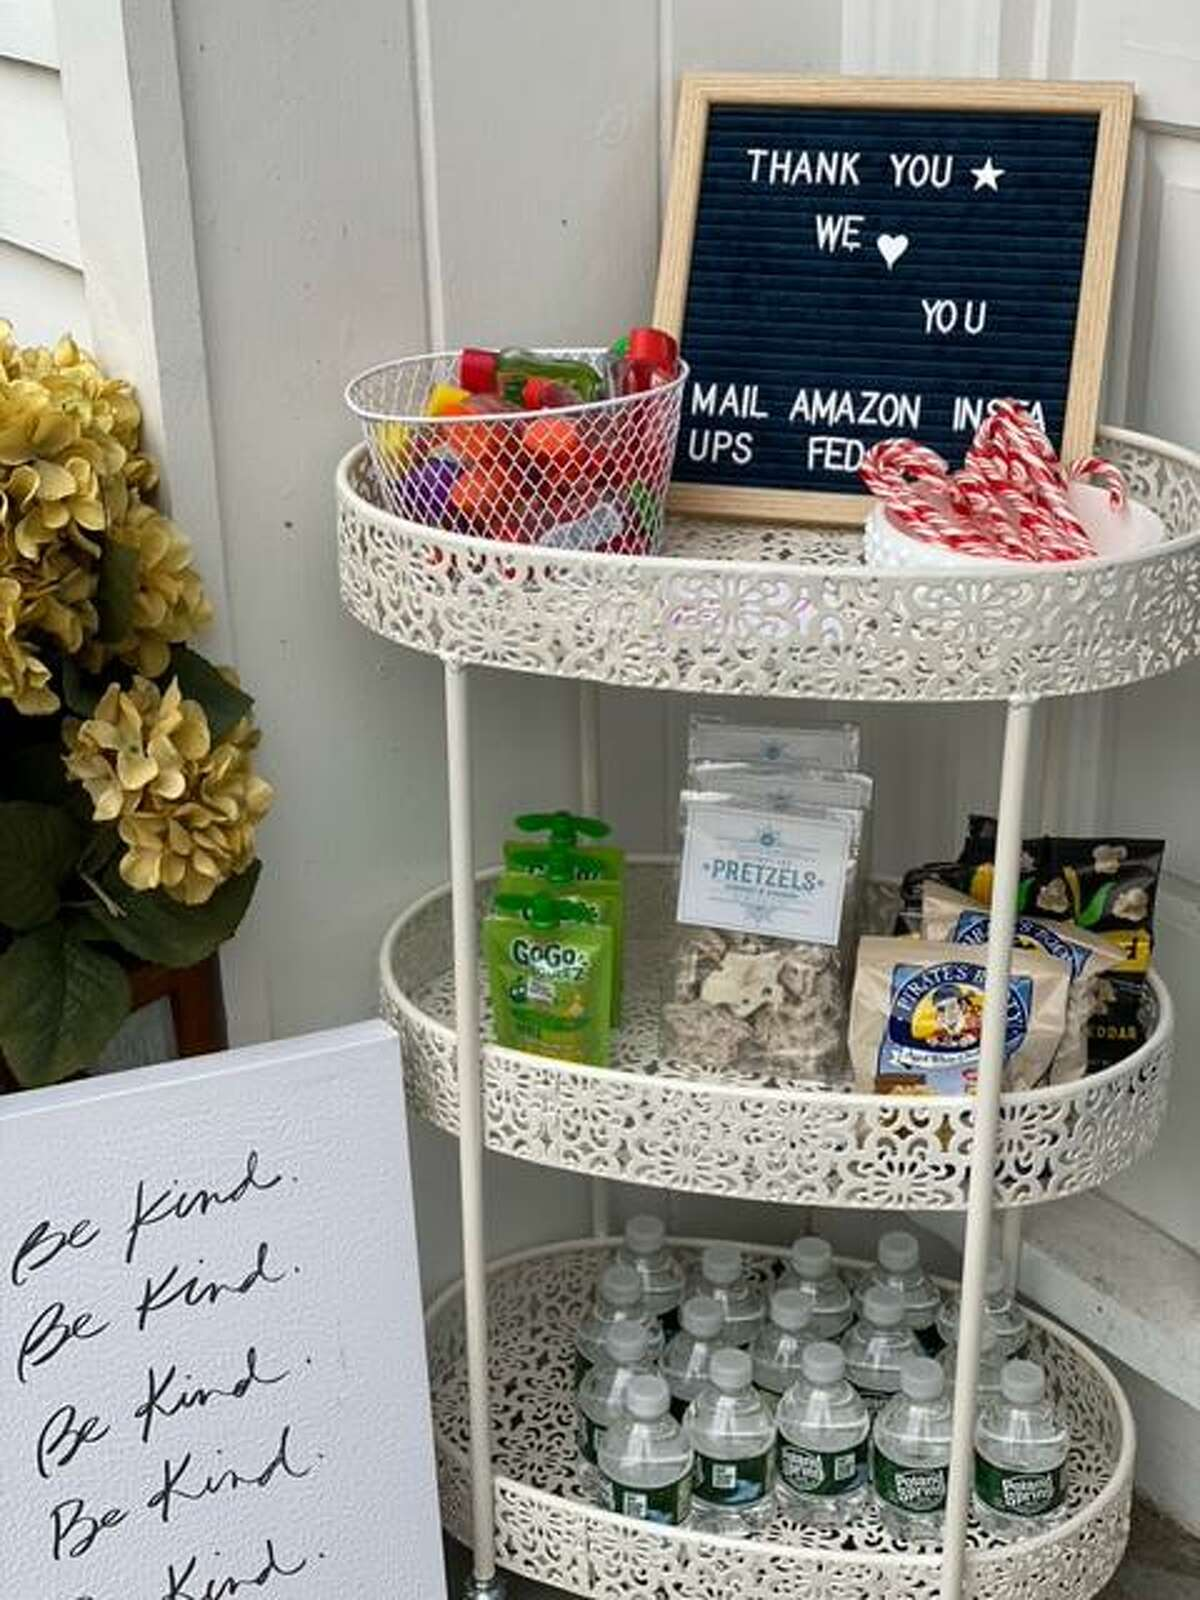 Shannon Doherty, Darien's Tik Tok mom, is offering mom hacks, like a thank you station during delivery season.